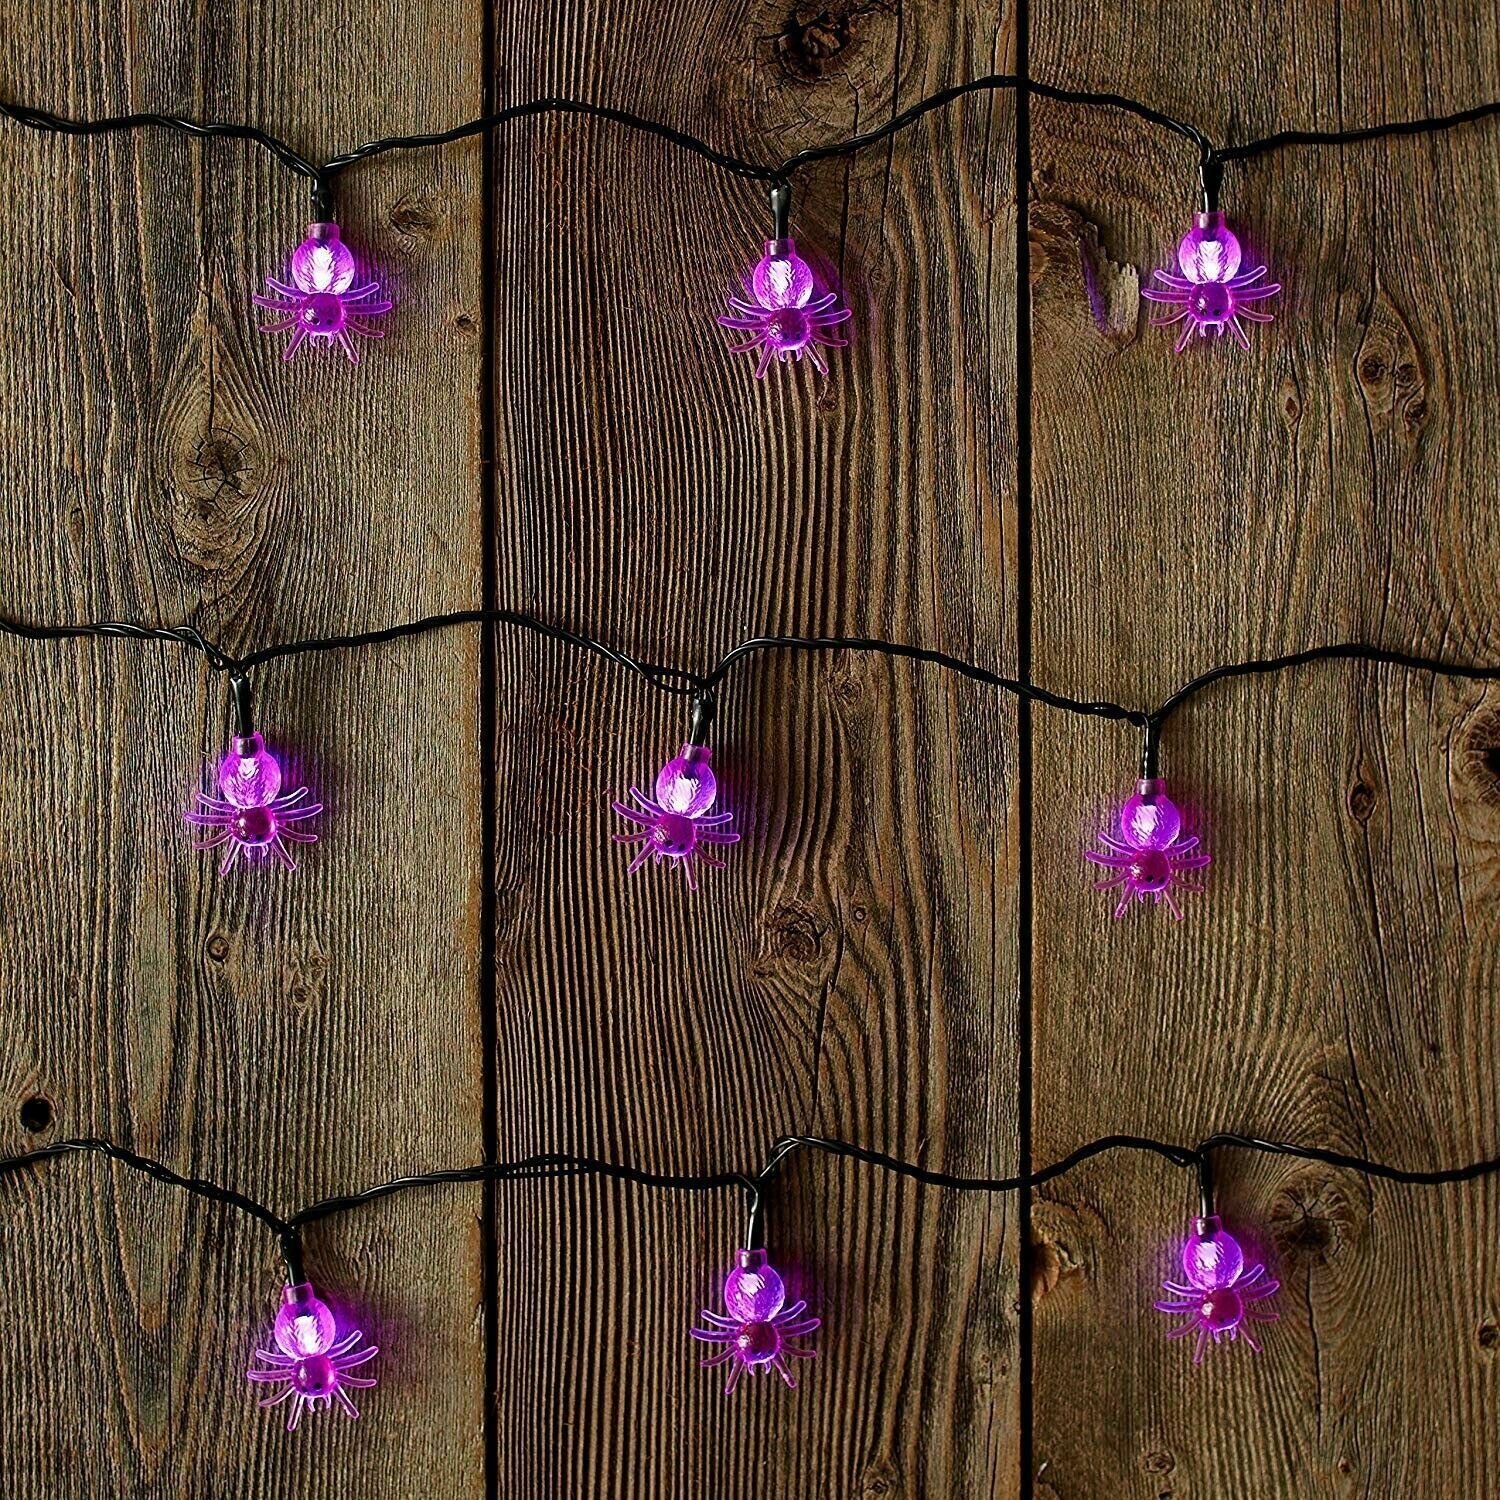 ultraled battery operated spider cap twinkle light